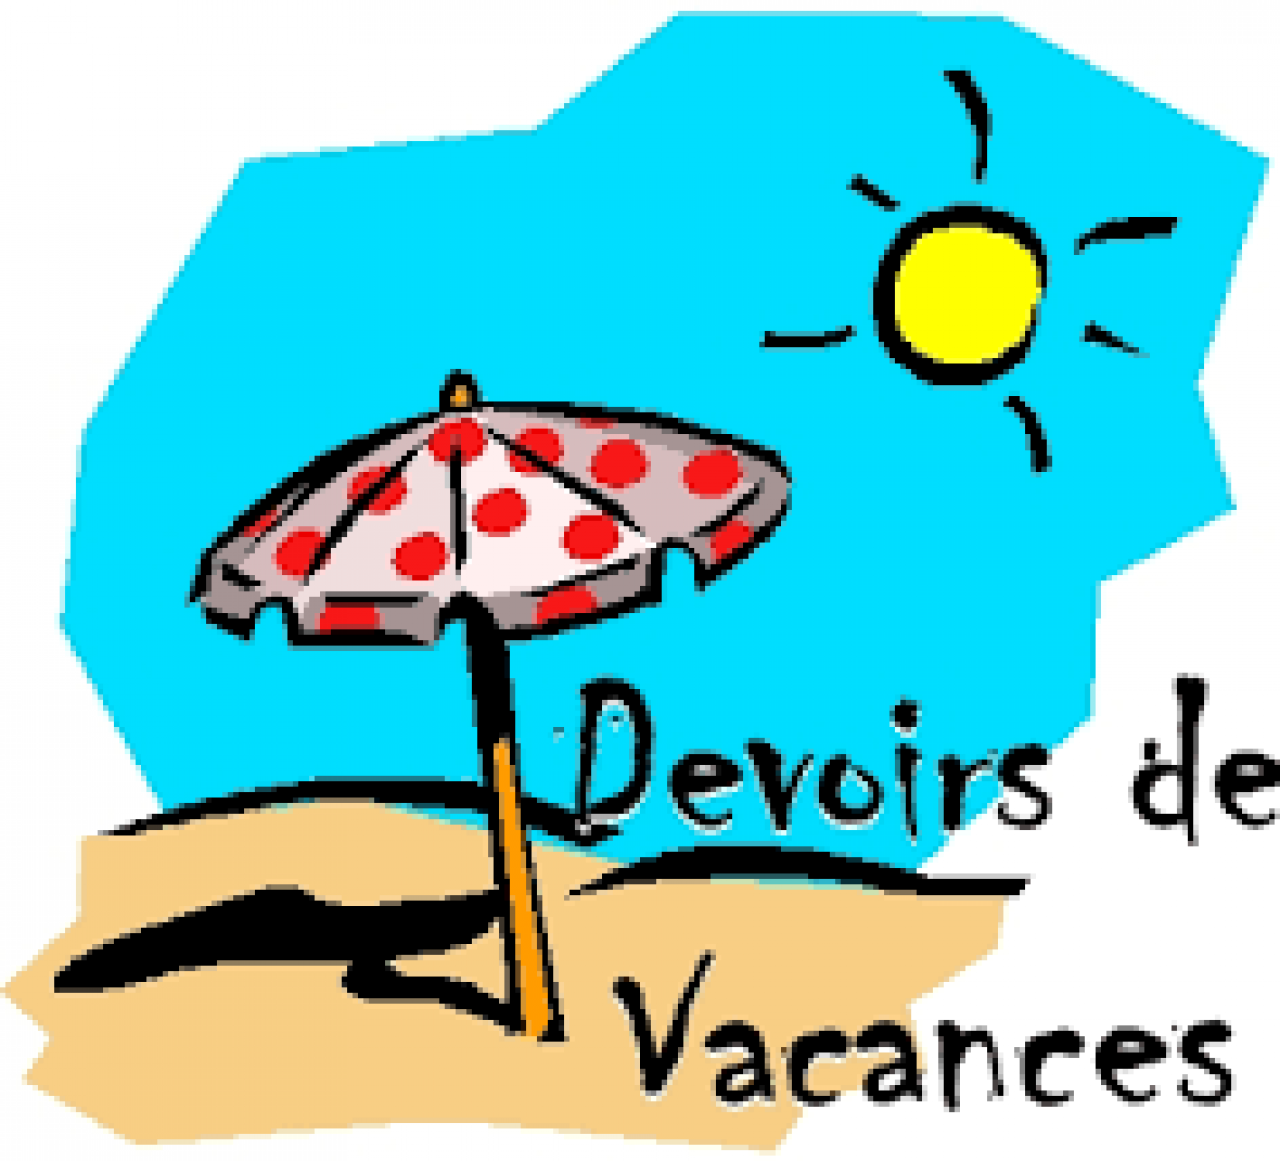 articles/July2019/devoirsvacances.png